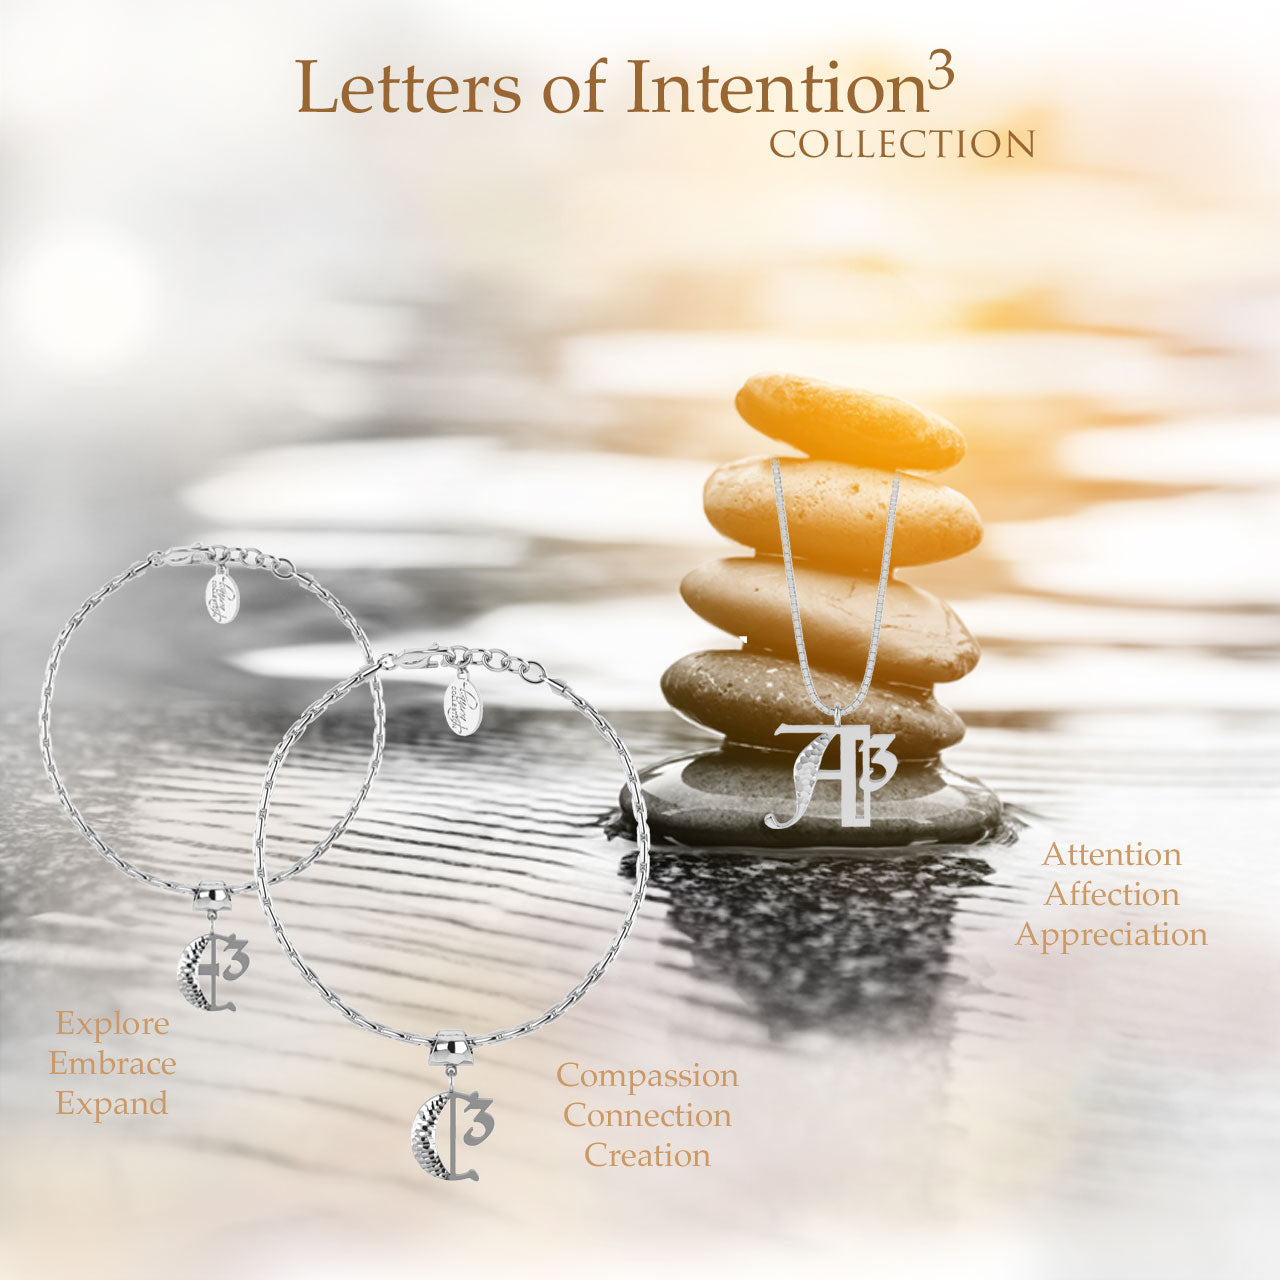 Letters of Intention